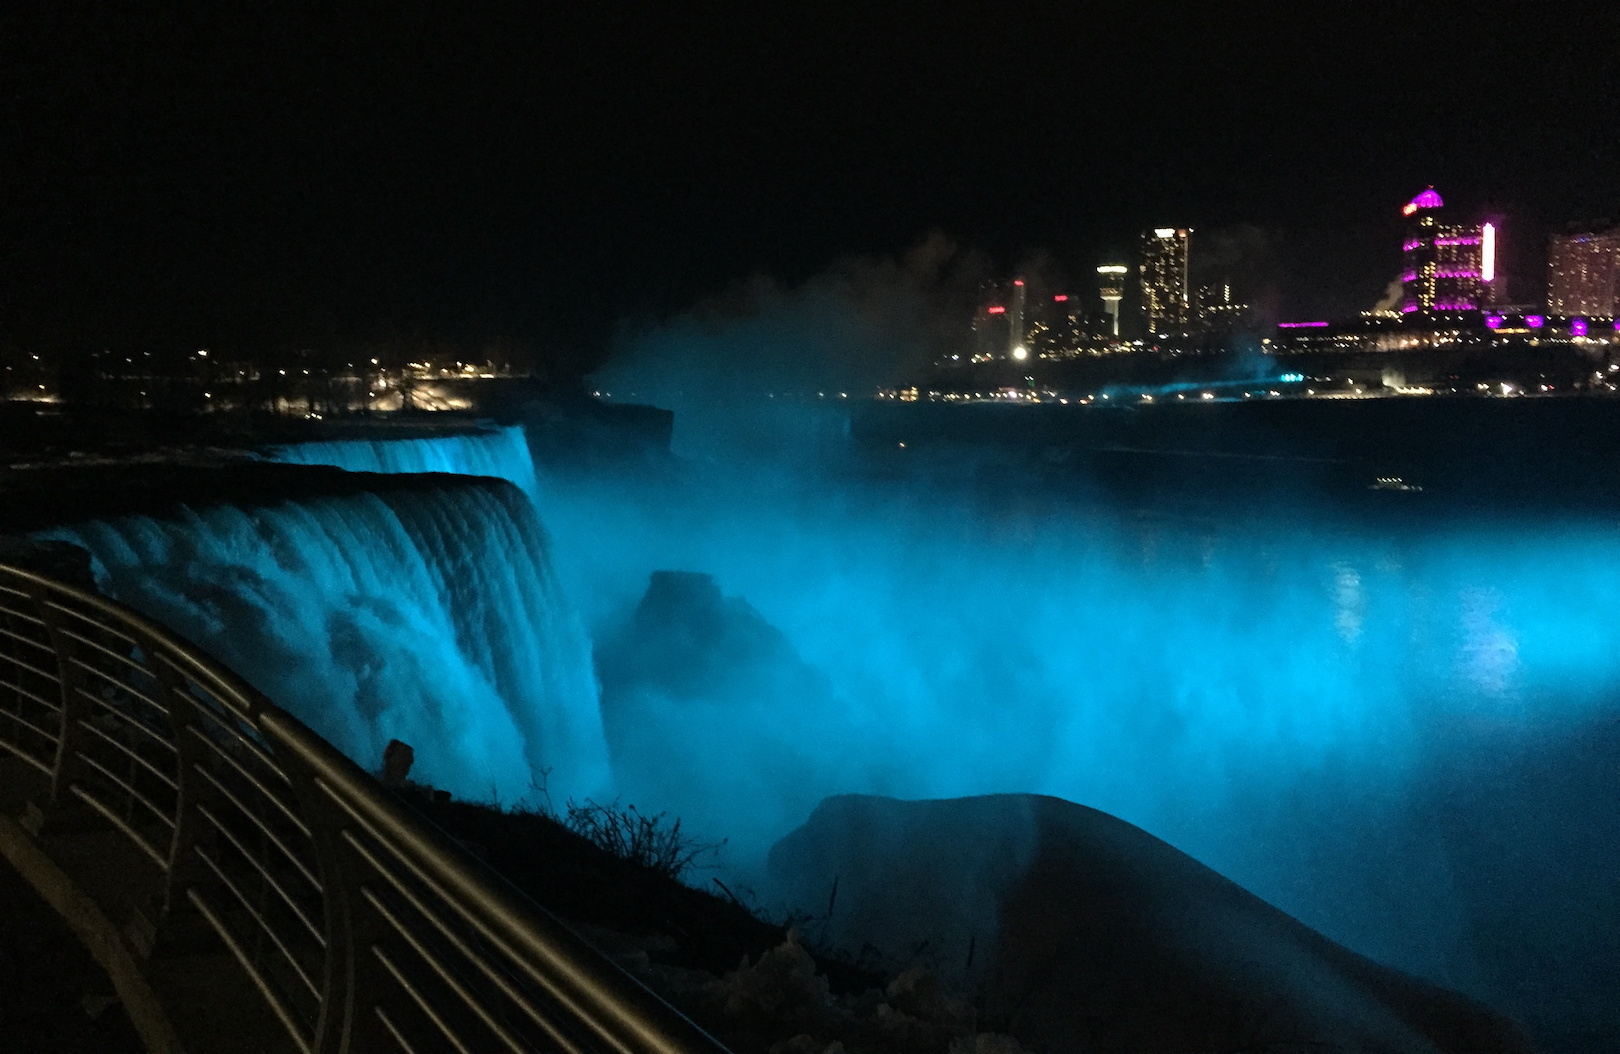 Niagara Falls is aglow in teal to mark World Lymphedema Day on March 6, 2018. The Falls and sites across the state again will be illuminated teal this March 6 to mark World Lymphedema Day 2020. (Photo by Patrick McPartland)